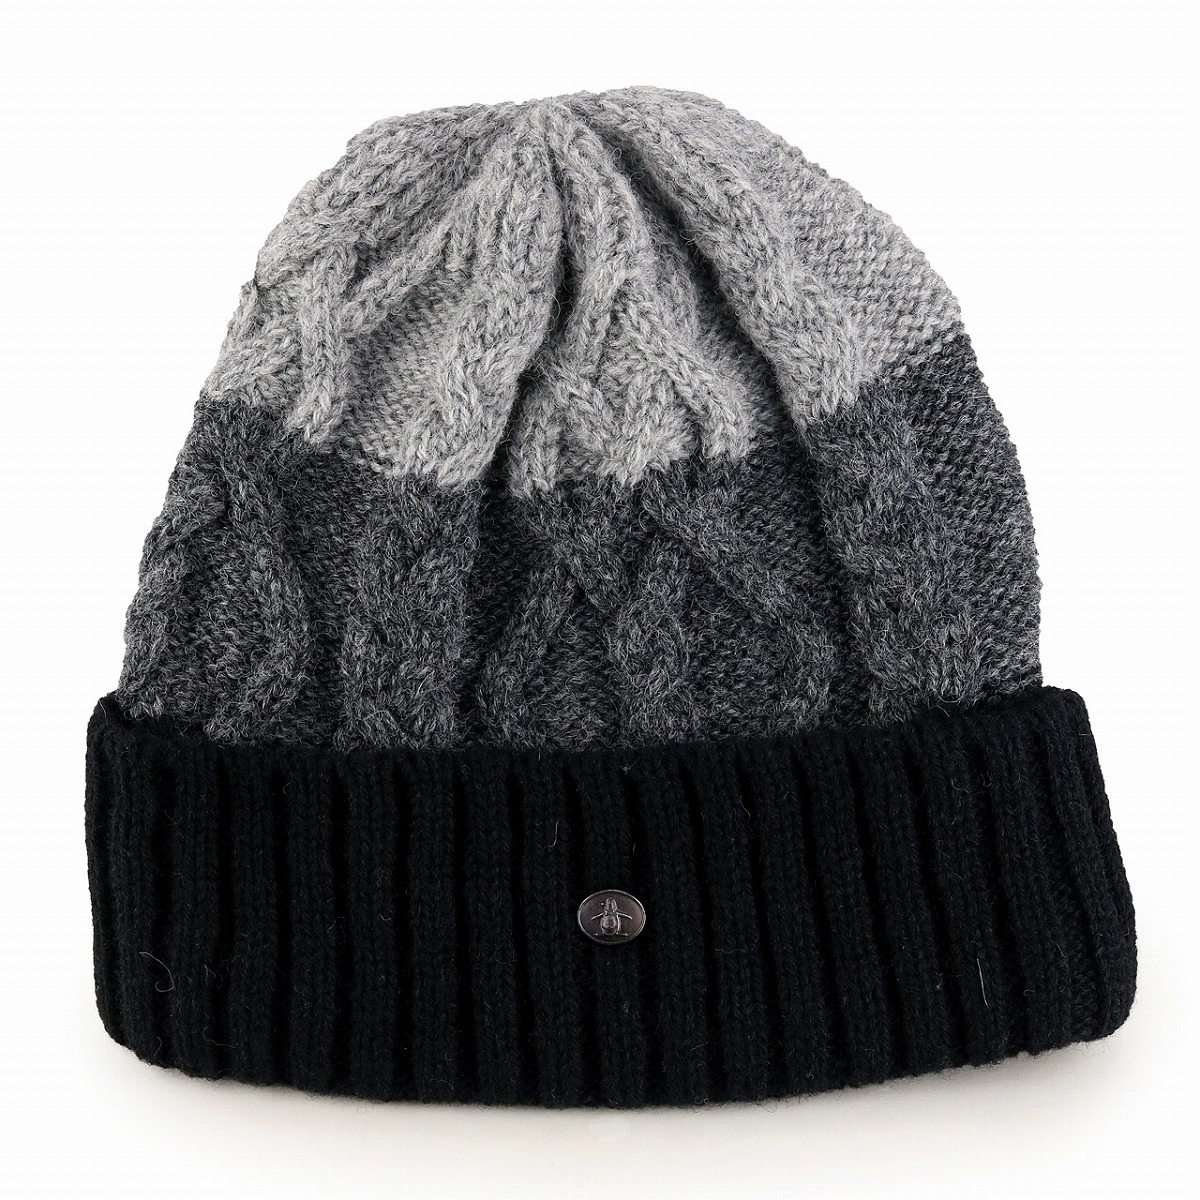 Low gauge knit hat men Munsingwear camping Lady s Shetland wool hat  Munsingwear golf mountain climbing pop   sad gray 165116e0042